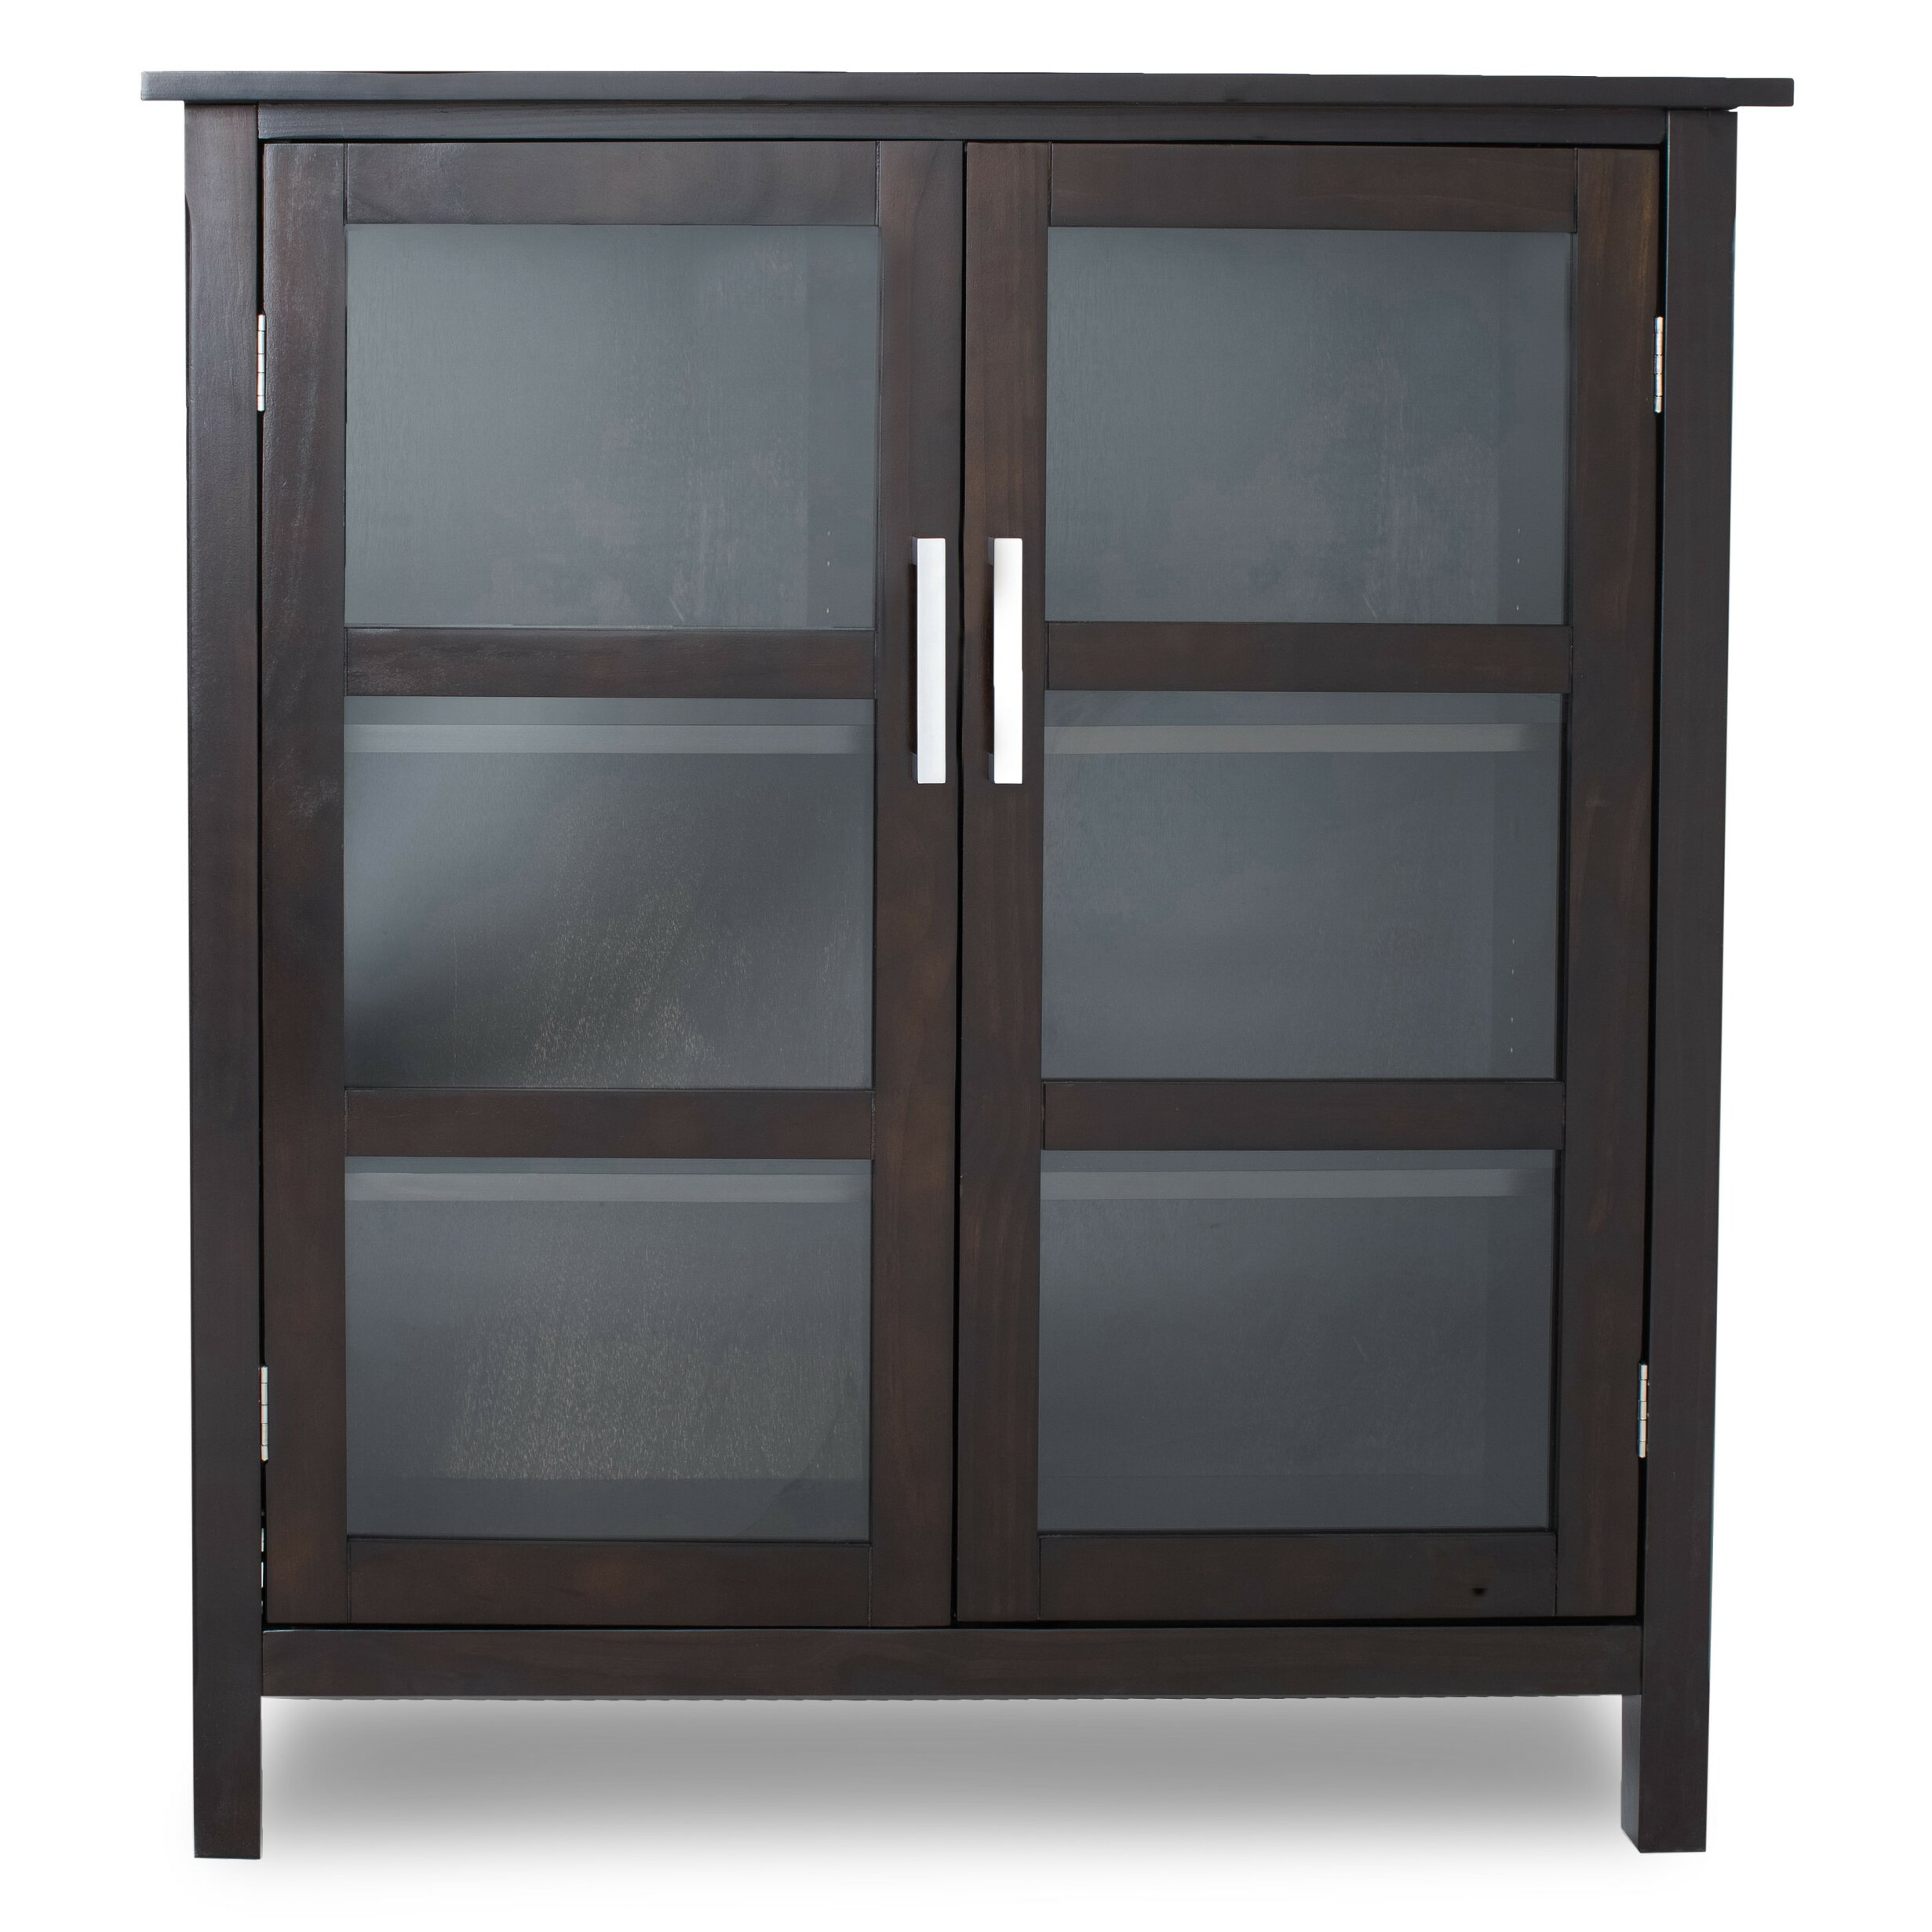 Furniture In Kitchener Simpli Home Kitchener Medium Storage Cabinet Reviews Wayfair